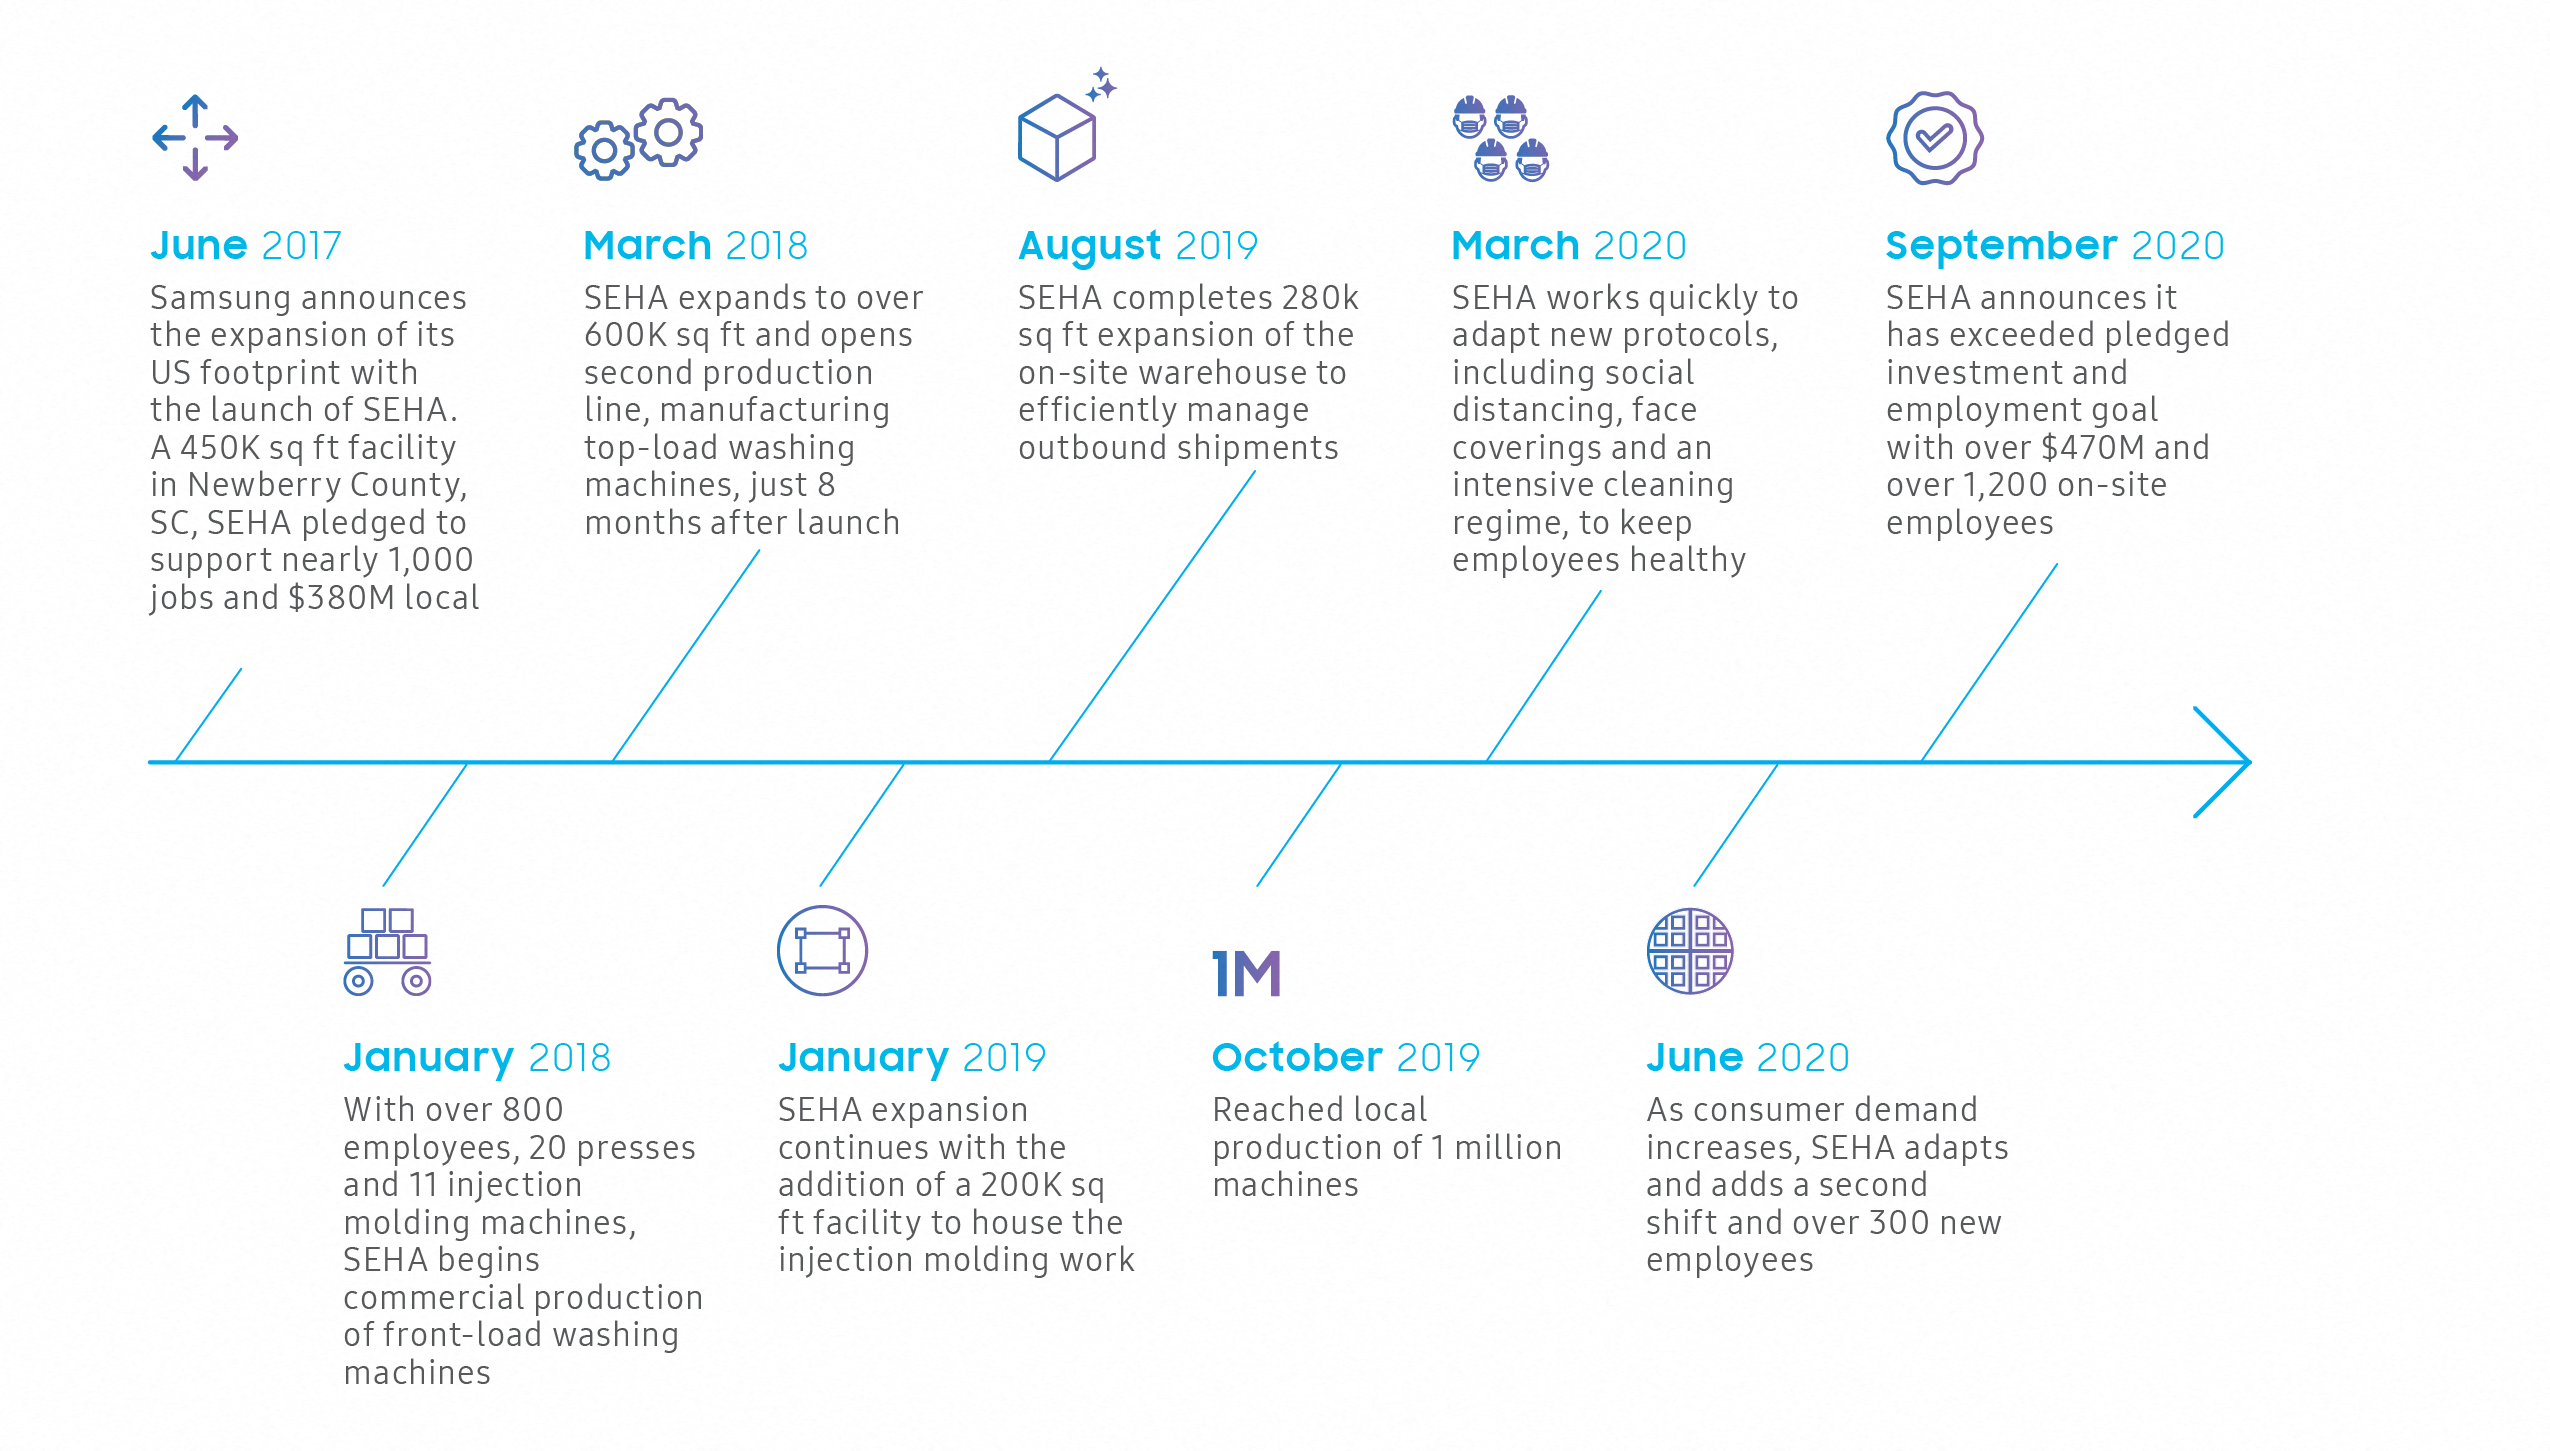 Samsung home appliance manufacturing facility (SEHA) Timeline